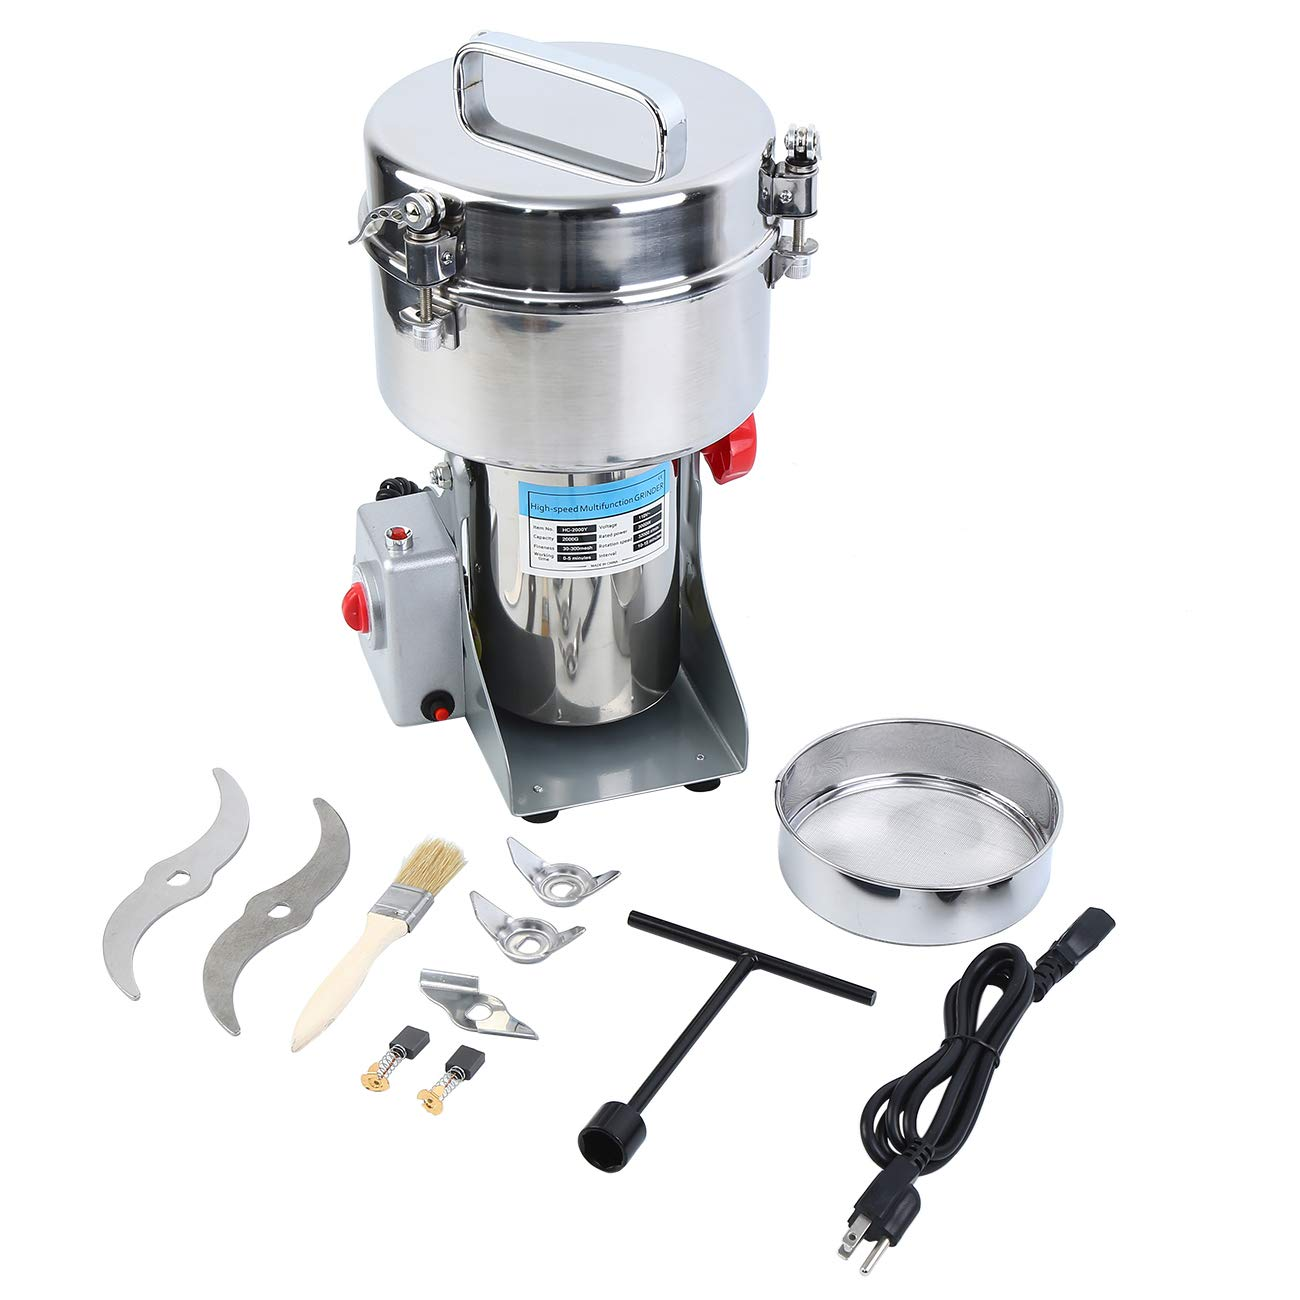 Ridgeyard 2000g Commercial Electric Grain Grinder Mill Powder Machine Grinder Flour Mill Coffee Grinder for Bean Seed Nut Spice Herb Pepper Cereal Wheat